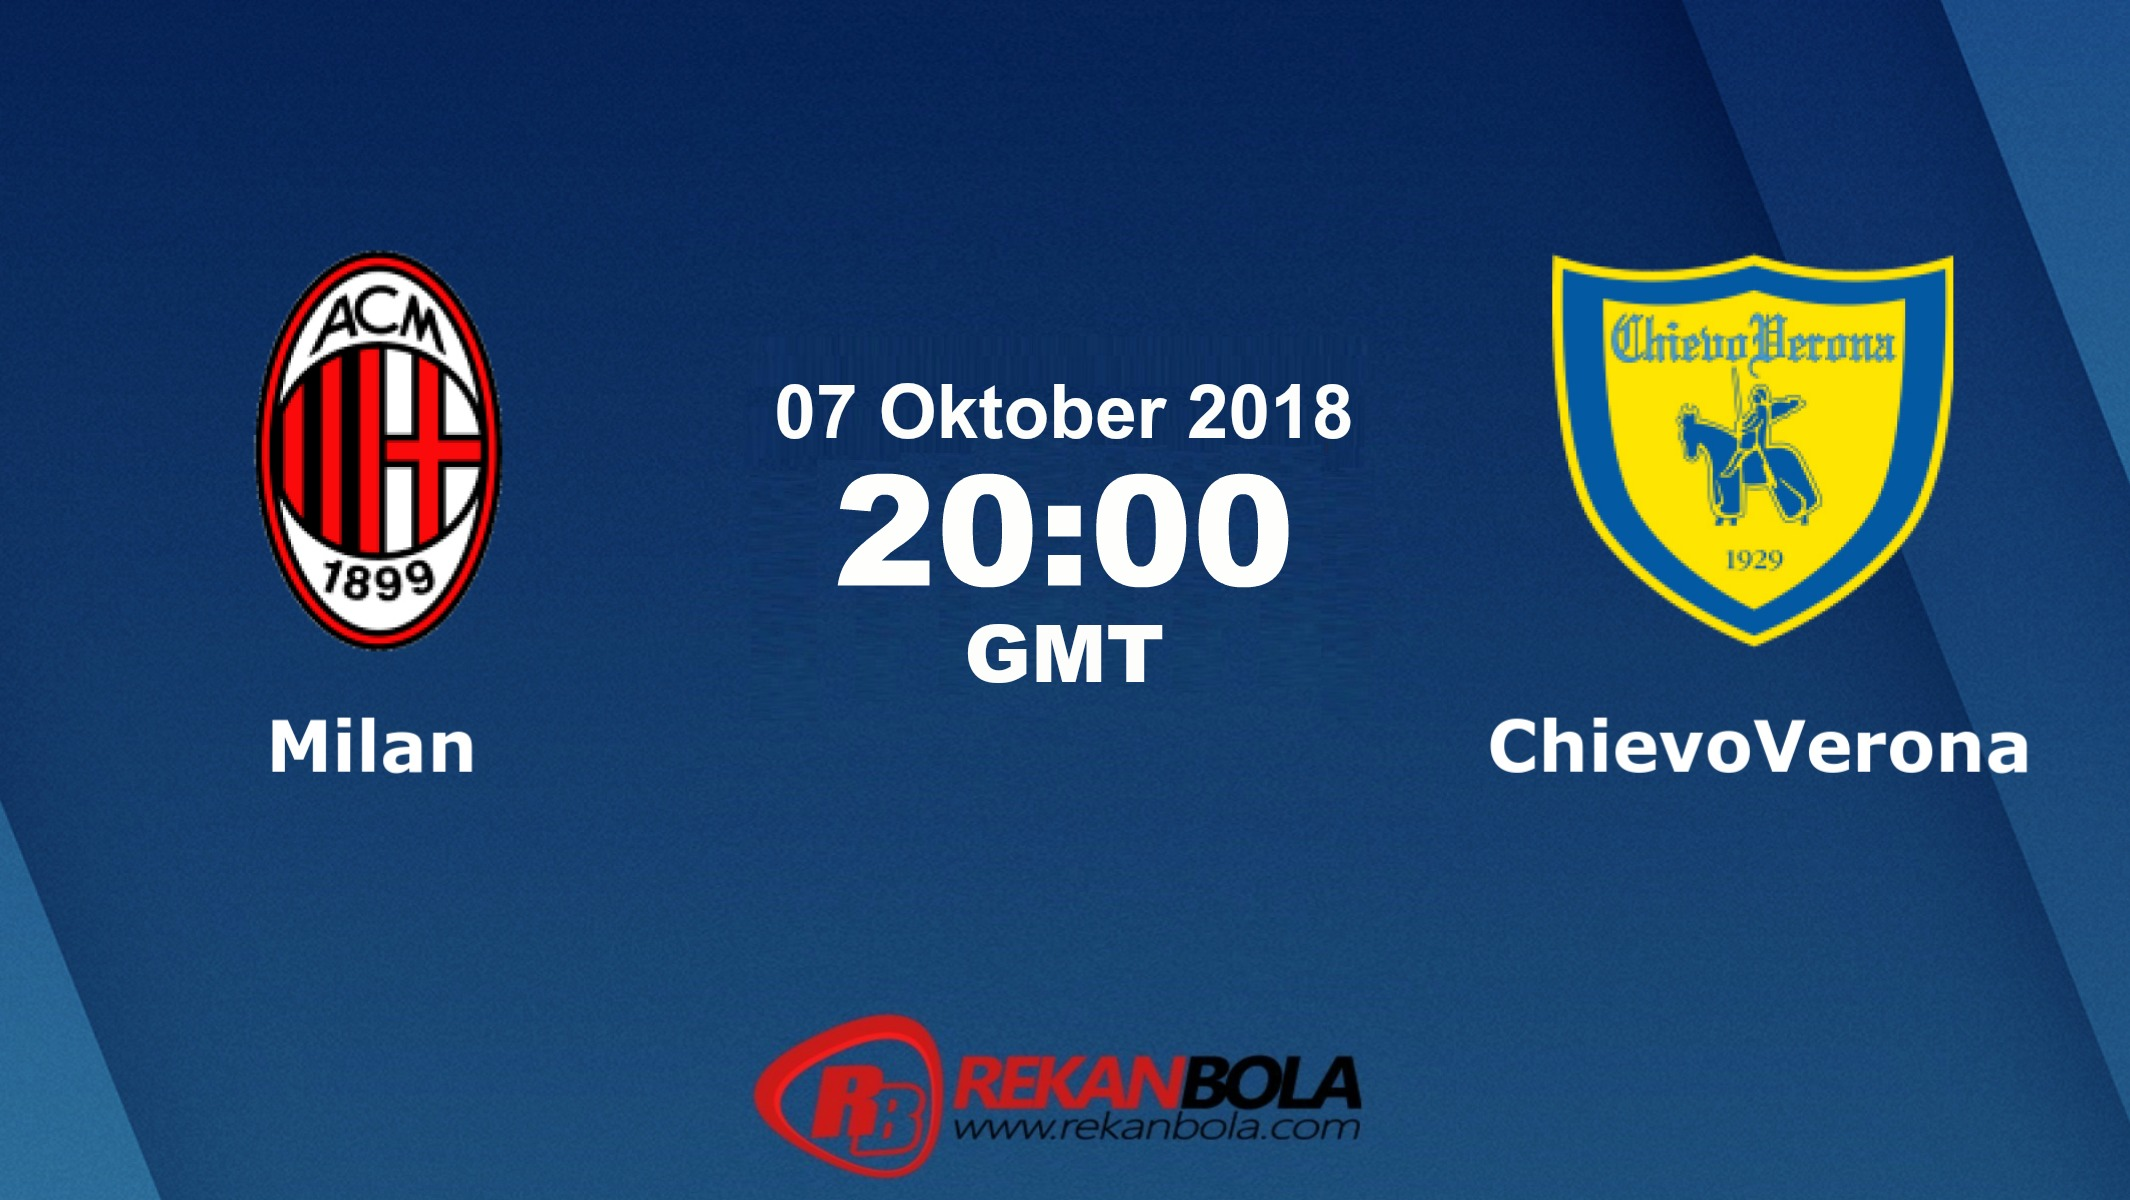 Nonton Siaran Live Streaming AC Milan Vs Chievo 07 Oktober 2018